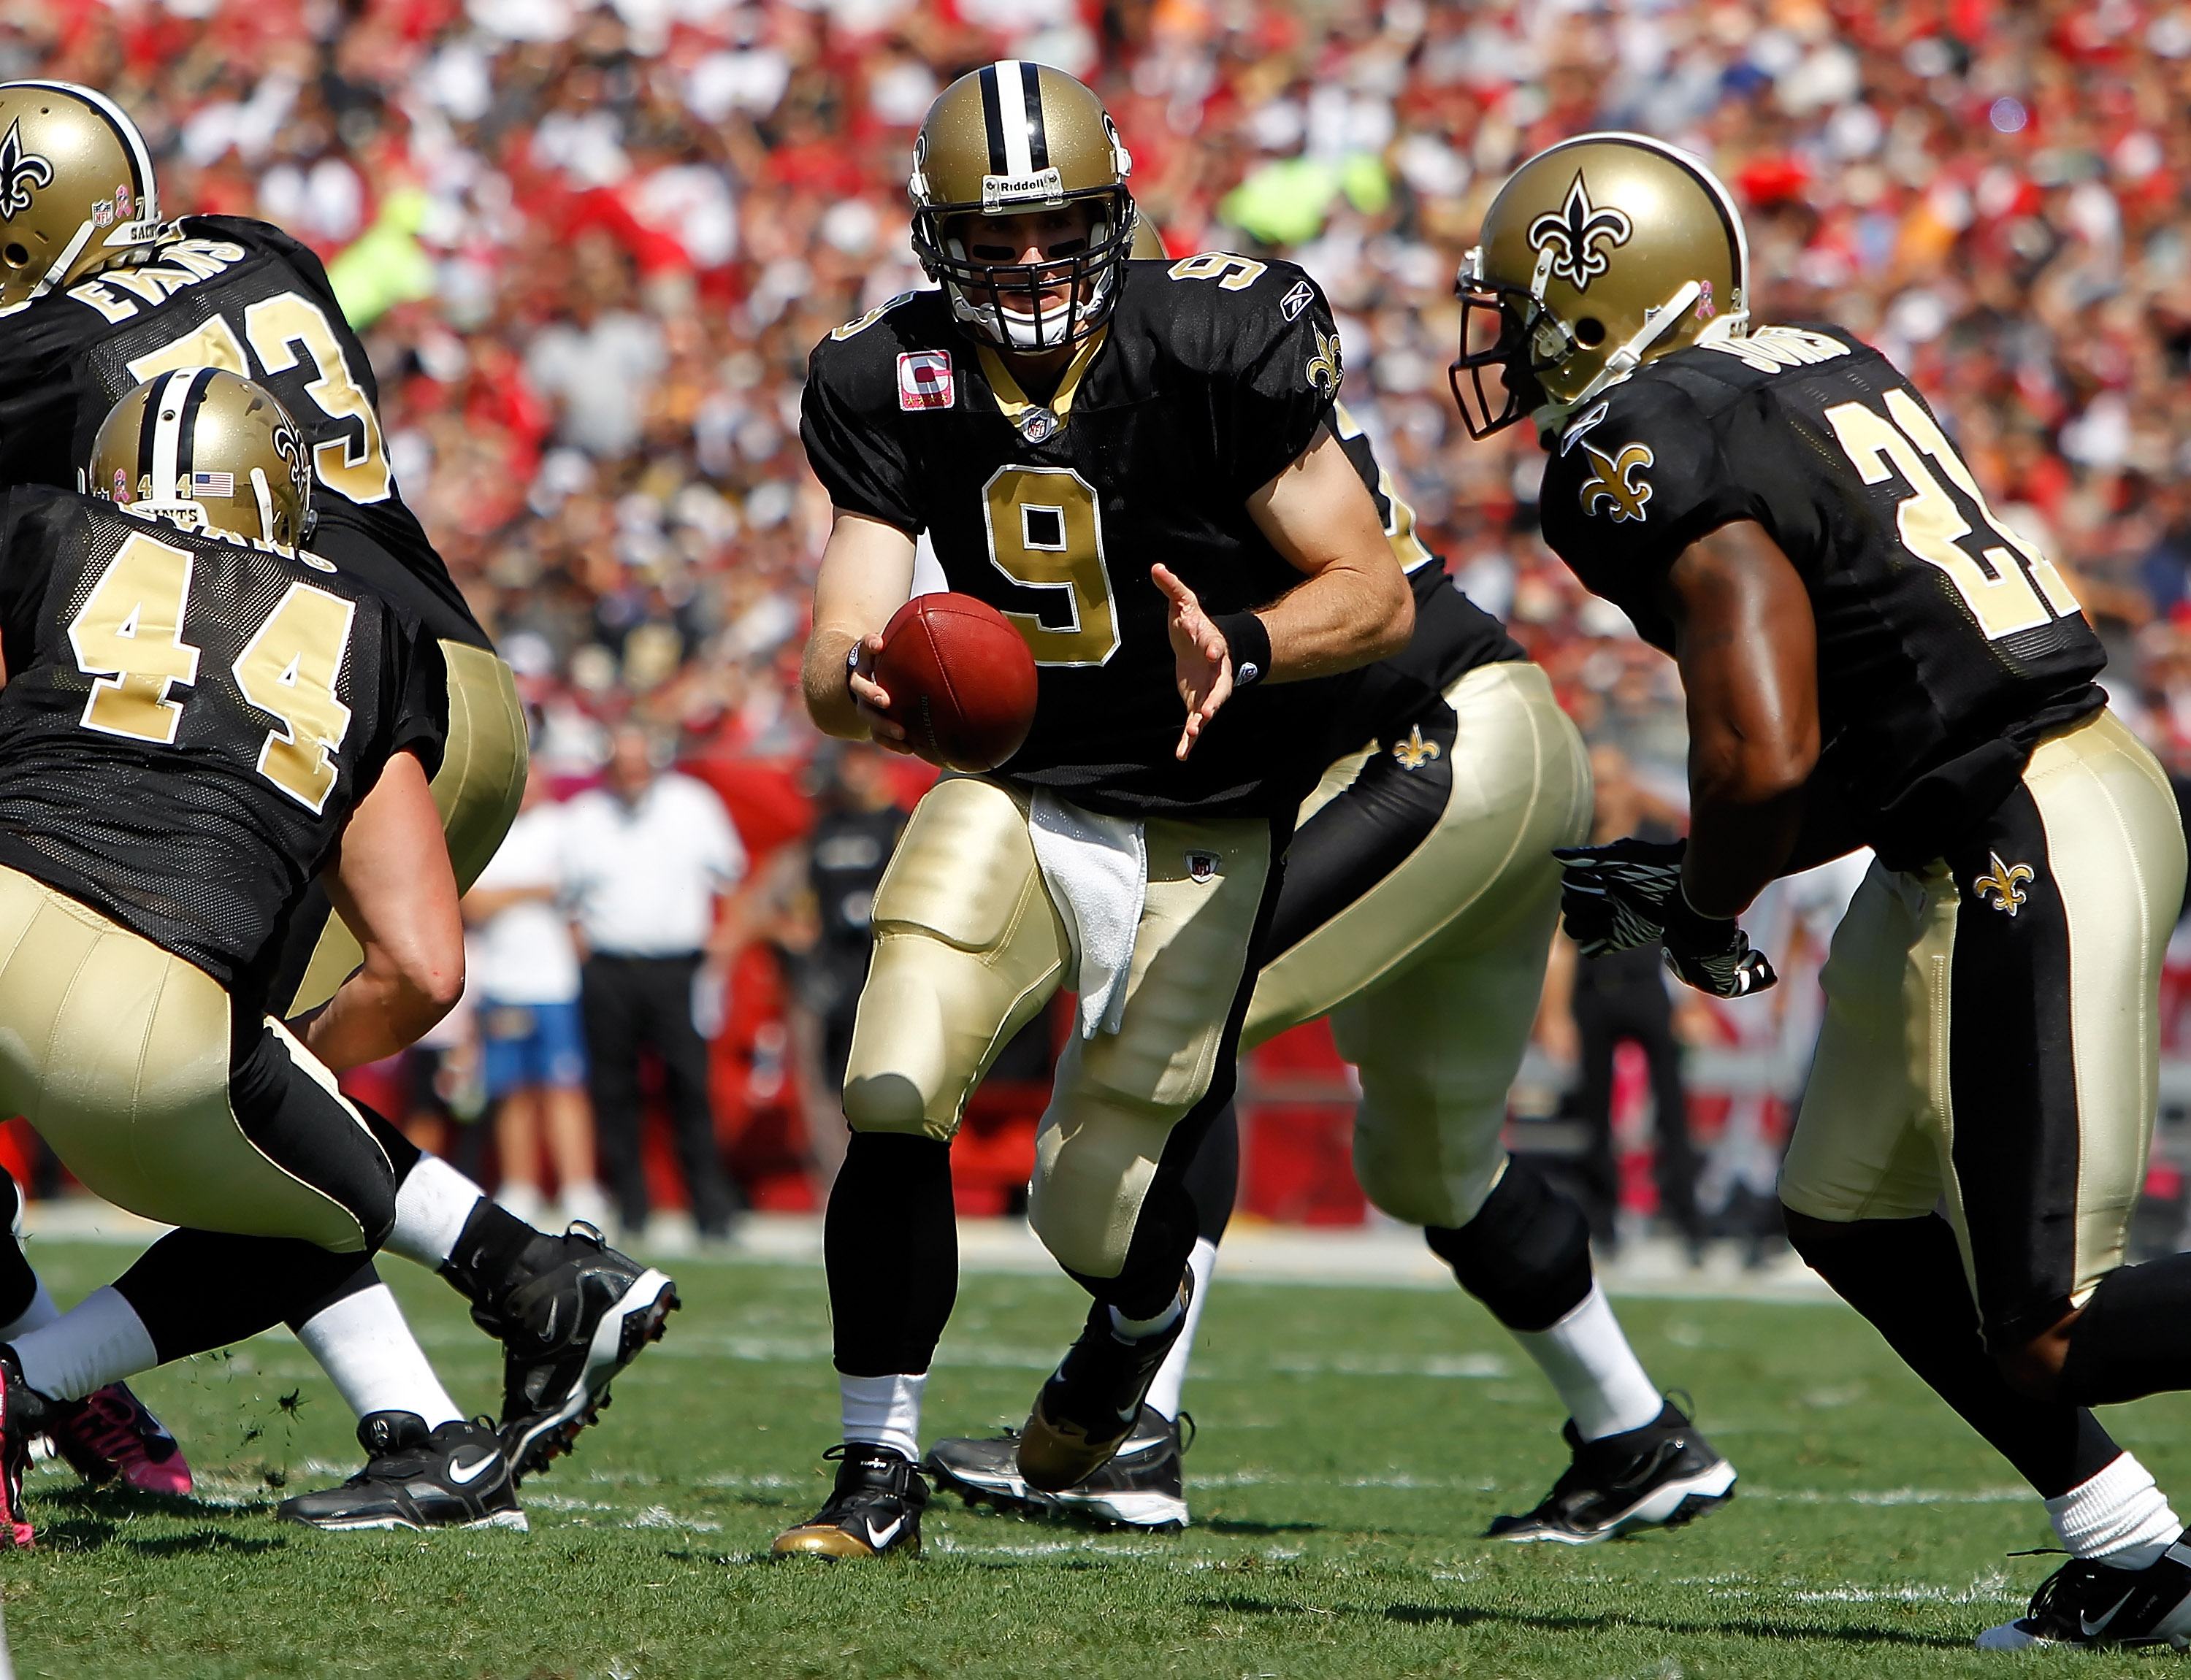 TAMPA, FL - OCTOBER 17:  Quarterback Drew Brees #9 of the New Orleans Saints hands the ball off against the Tampa Bay Buccaneers during the game at Raymond James Stadium on October 17, 2010 in Tampa, Florida.  (Photo by J. Meric/Getty Images)